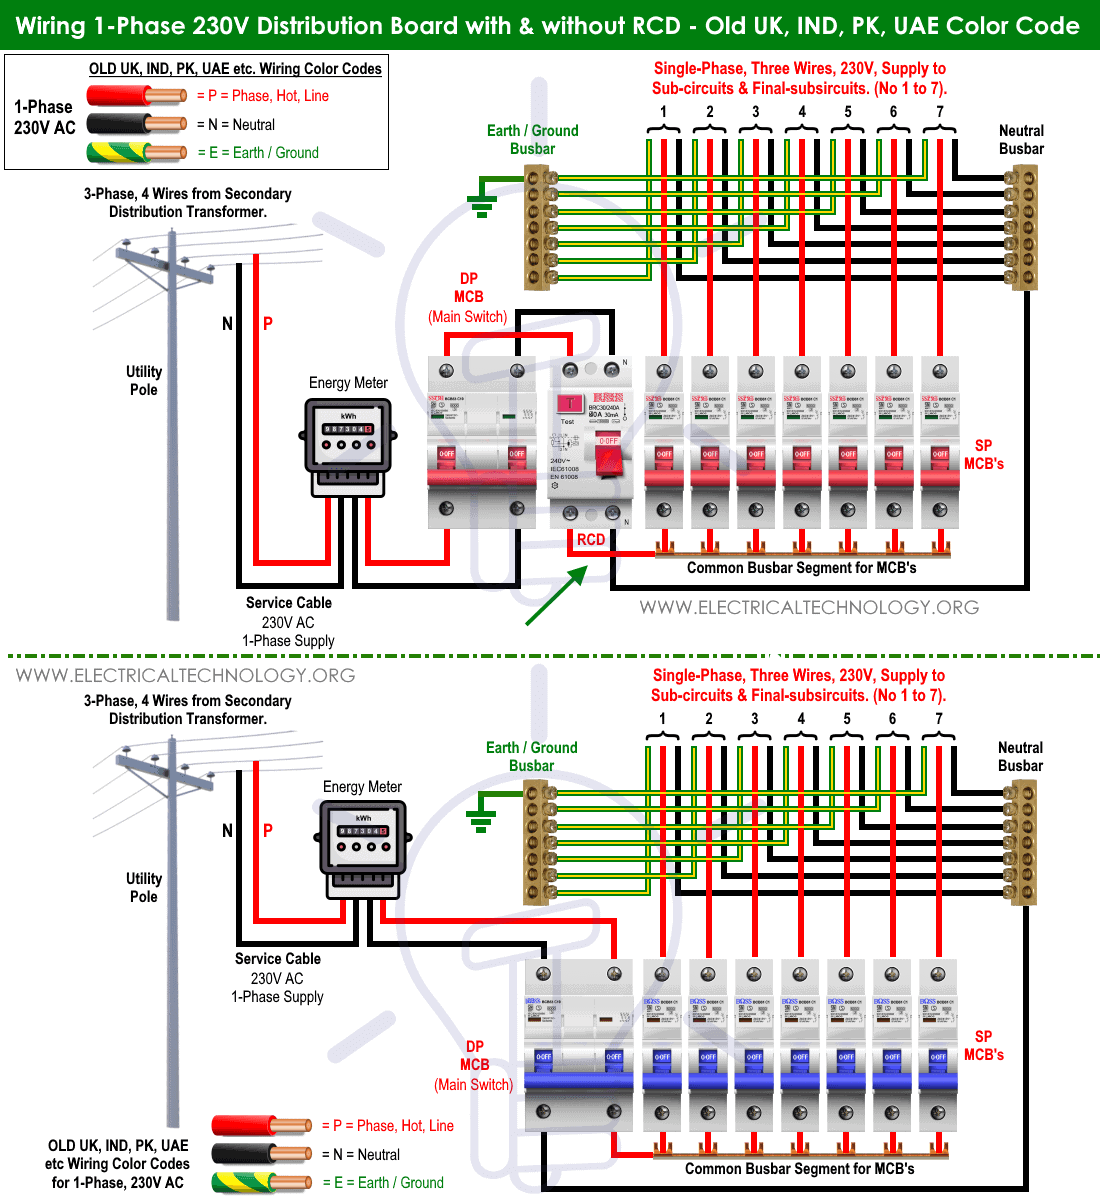 Consumer Unit Wiring with & without RCD - Old UK Wire Color Codes